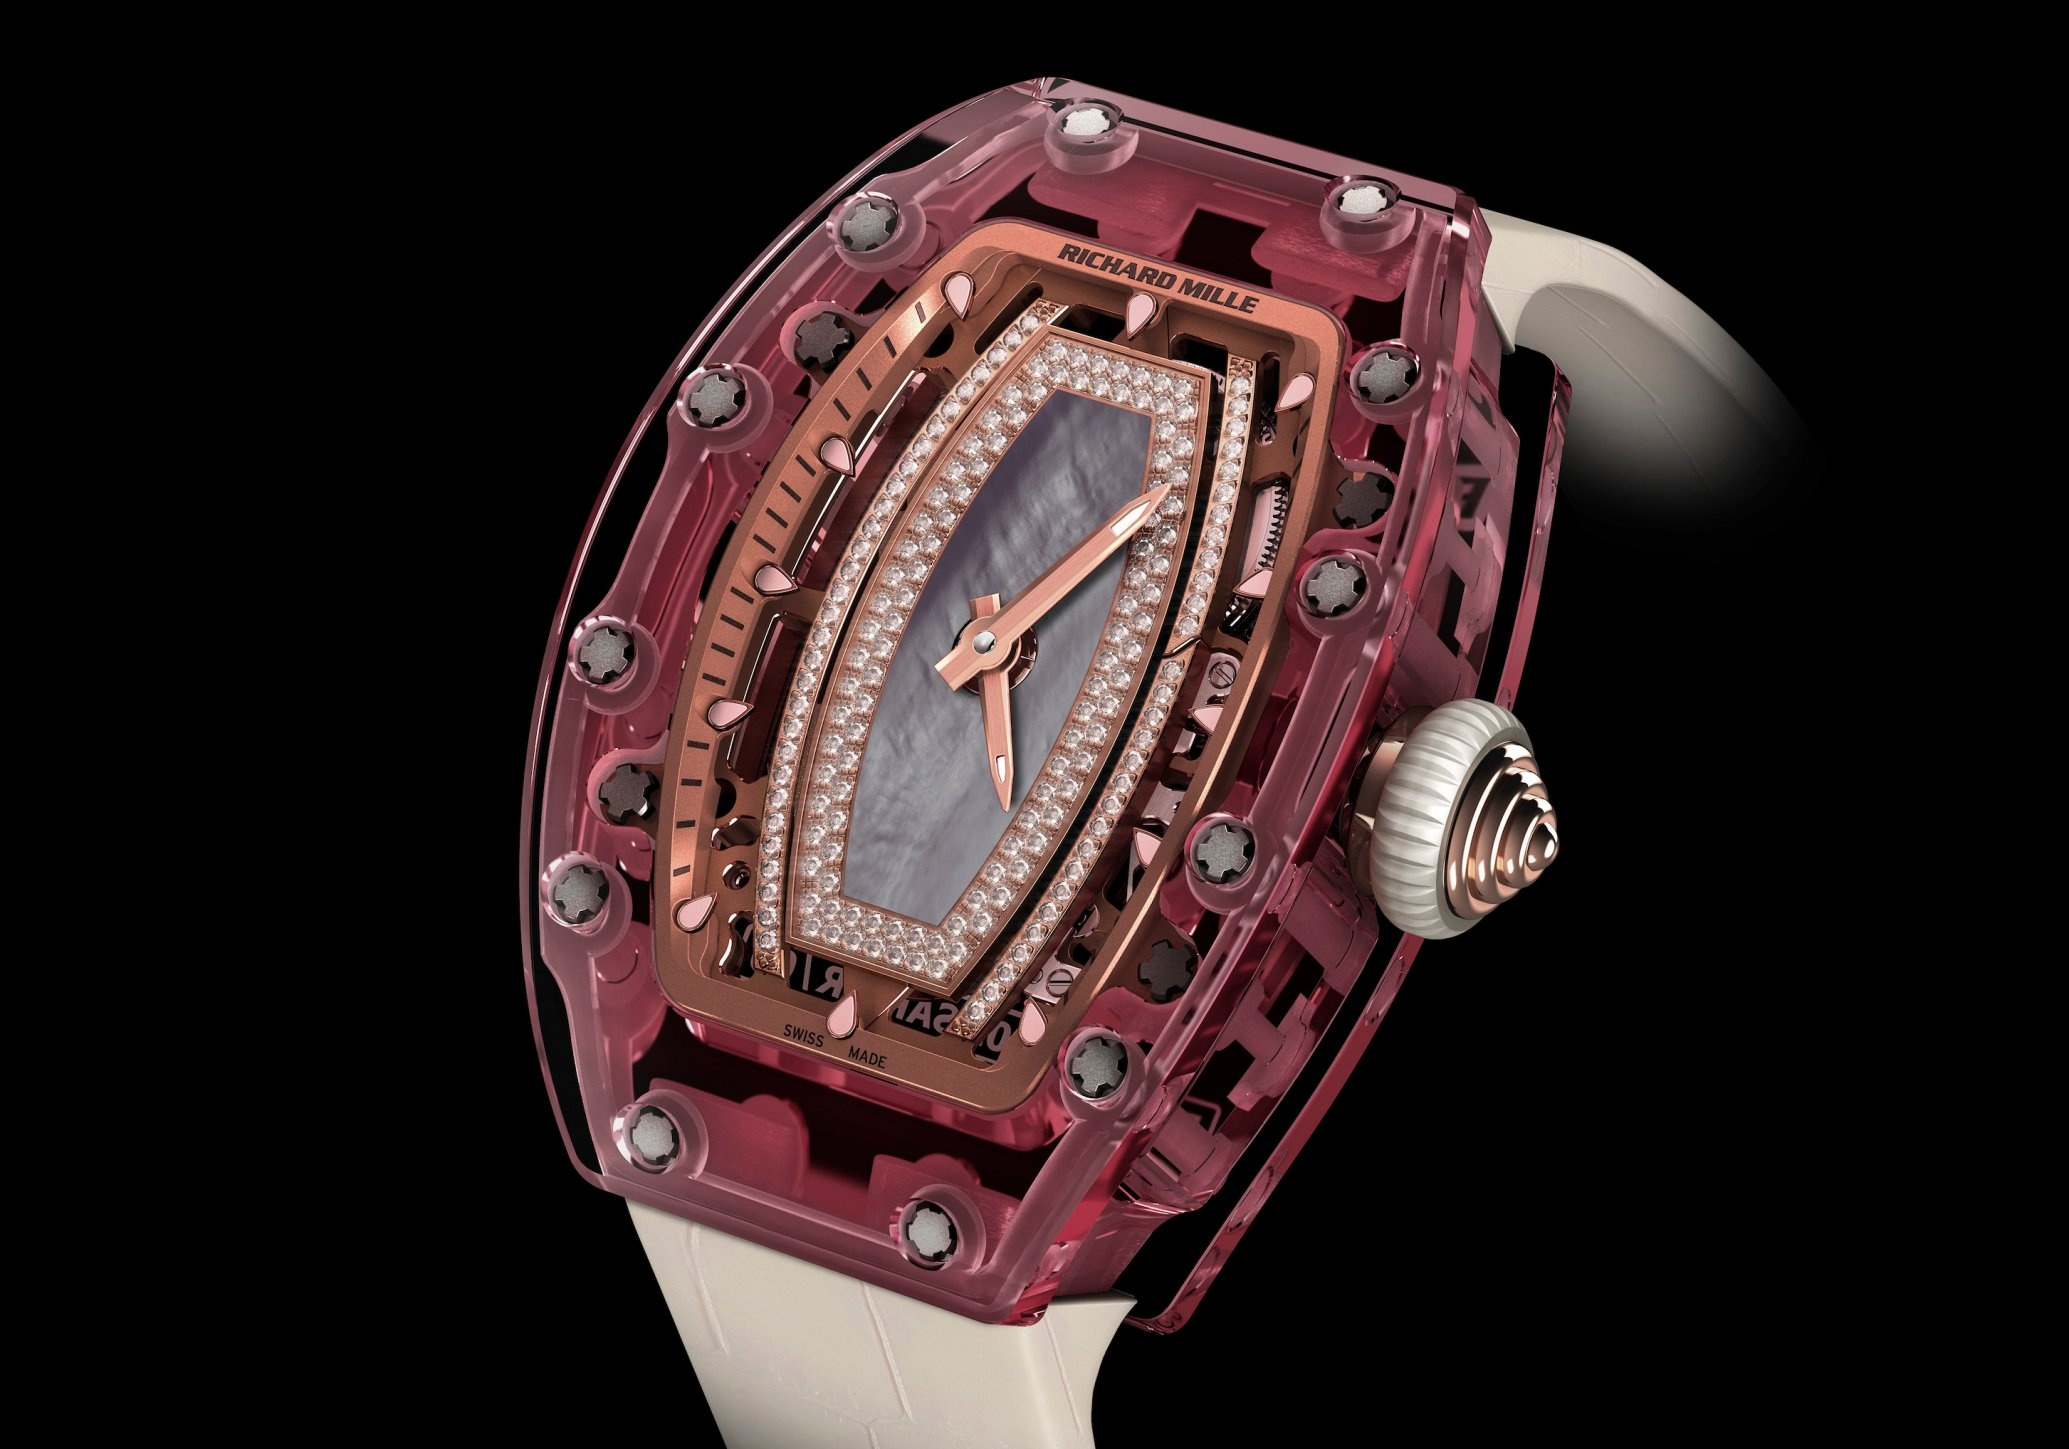 The Richard Mille 'Pink Lady' Ref. 0702. Photo courtesy of Richard Mille.